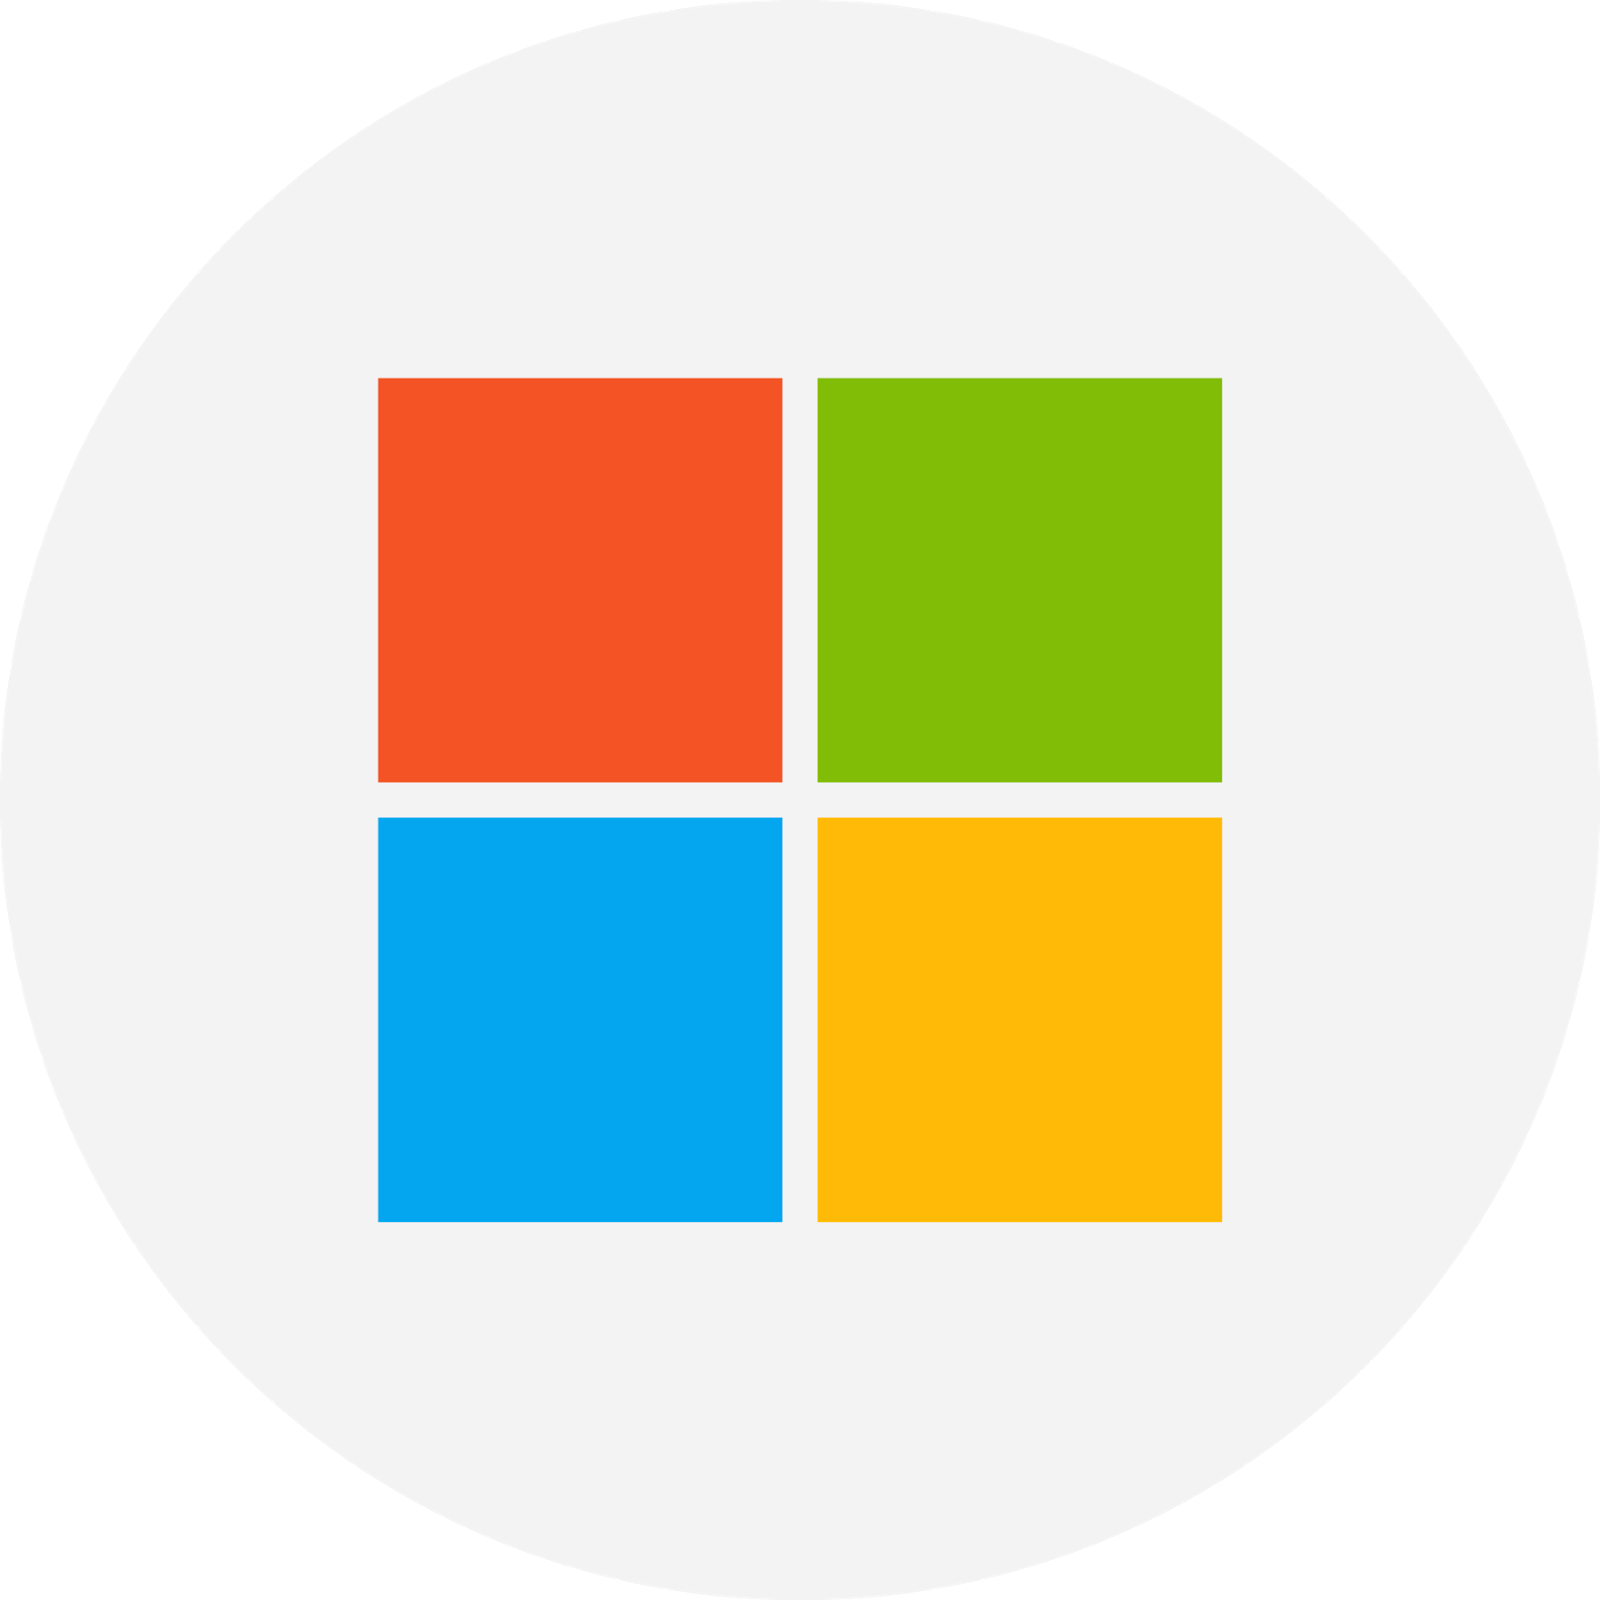 download microsoft icon logo svg eps png psd ai vector color.